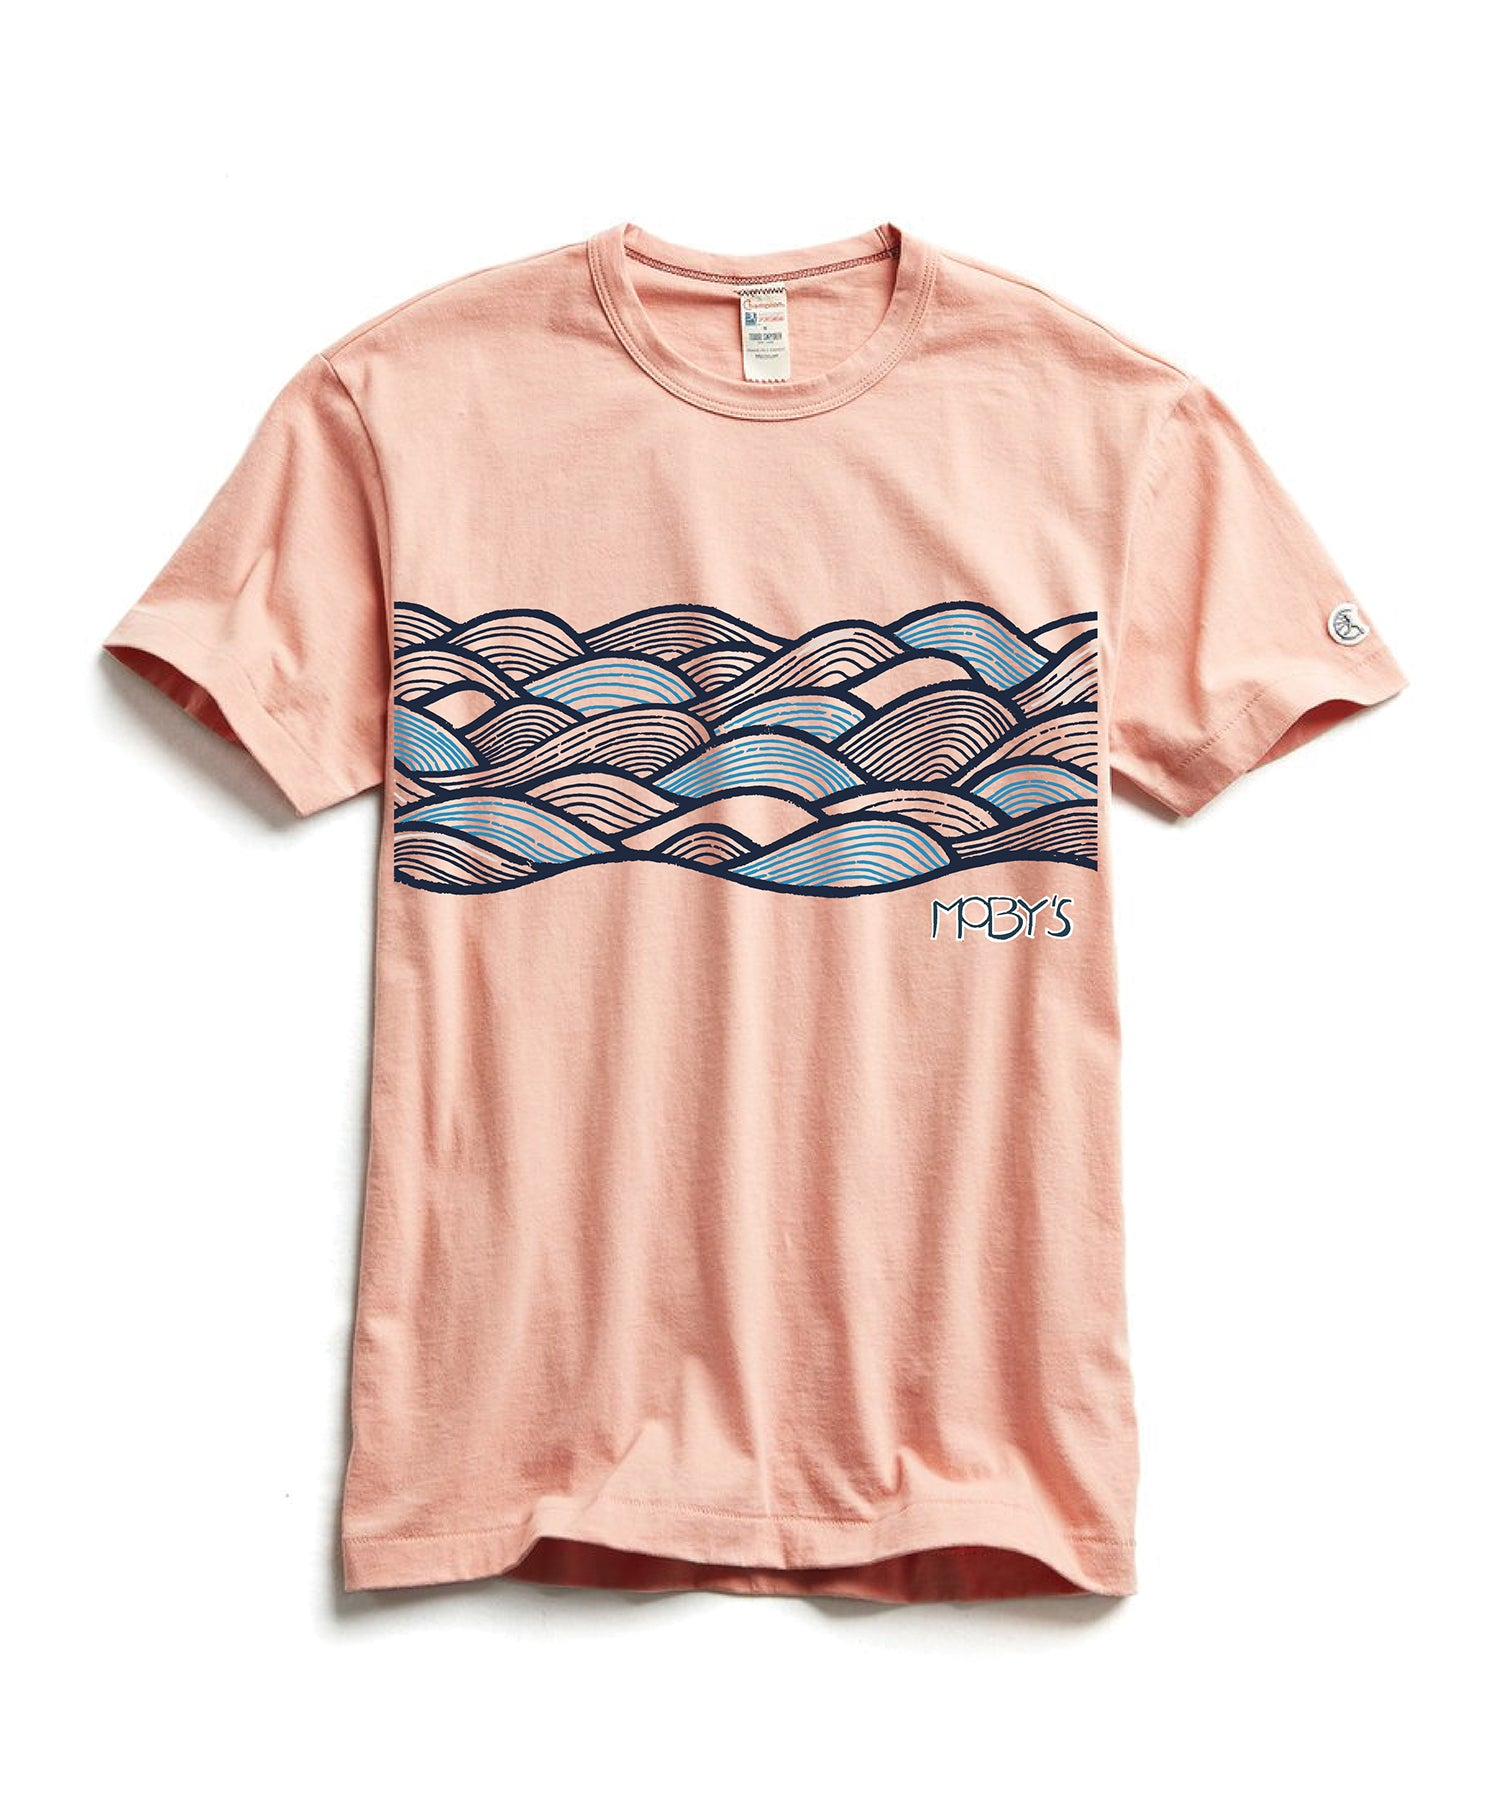 Moby's Ocean Tee in Pale Salmon